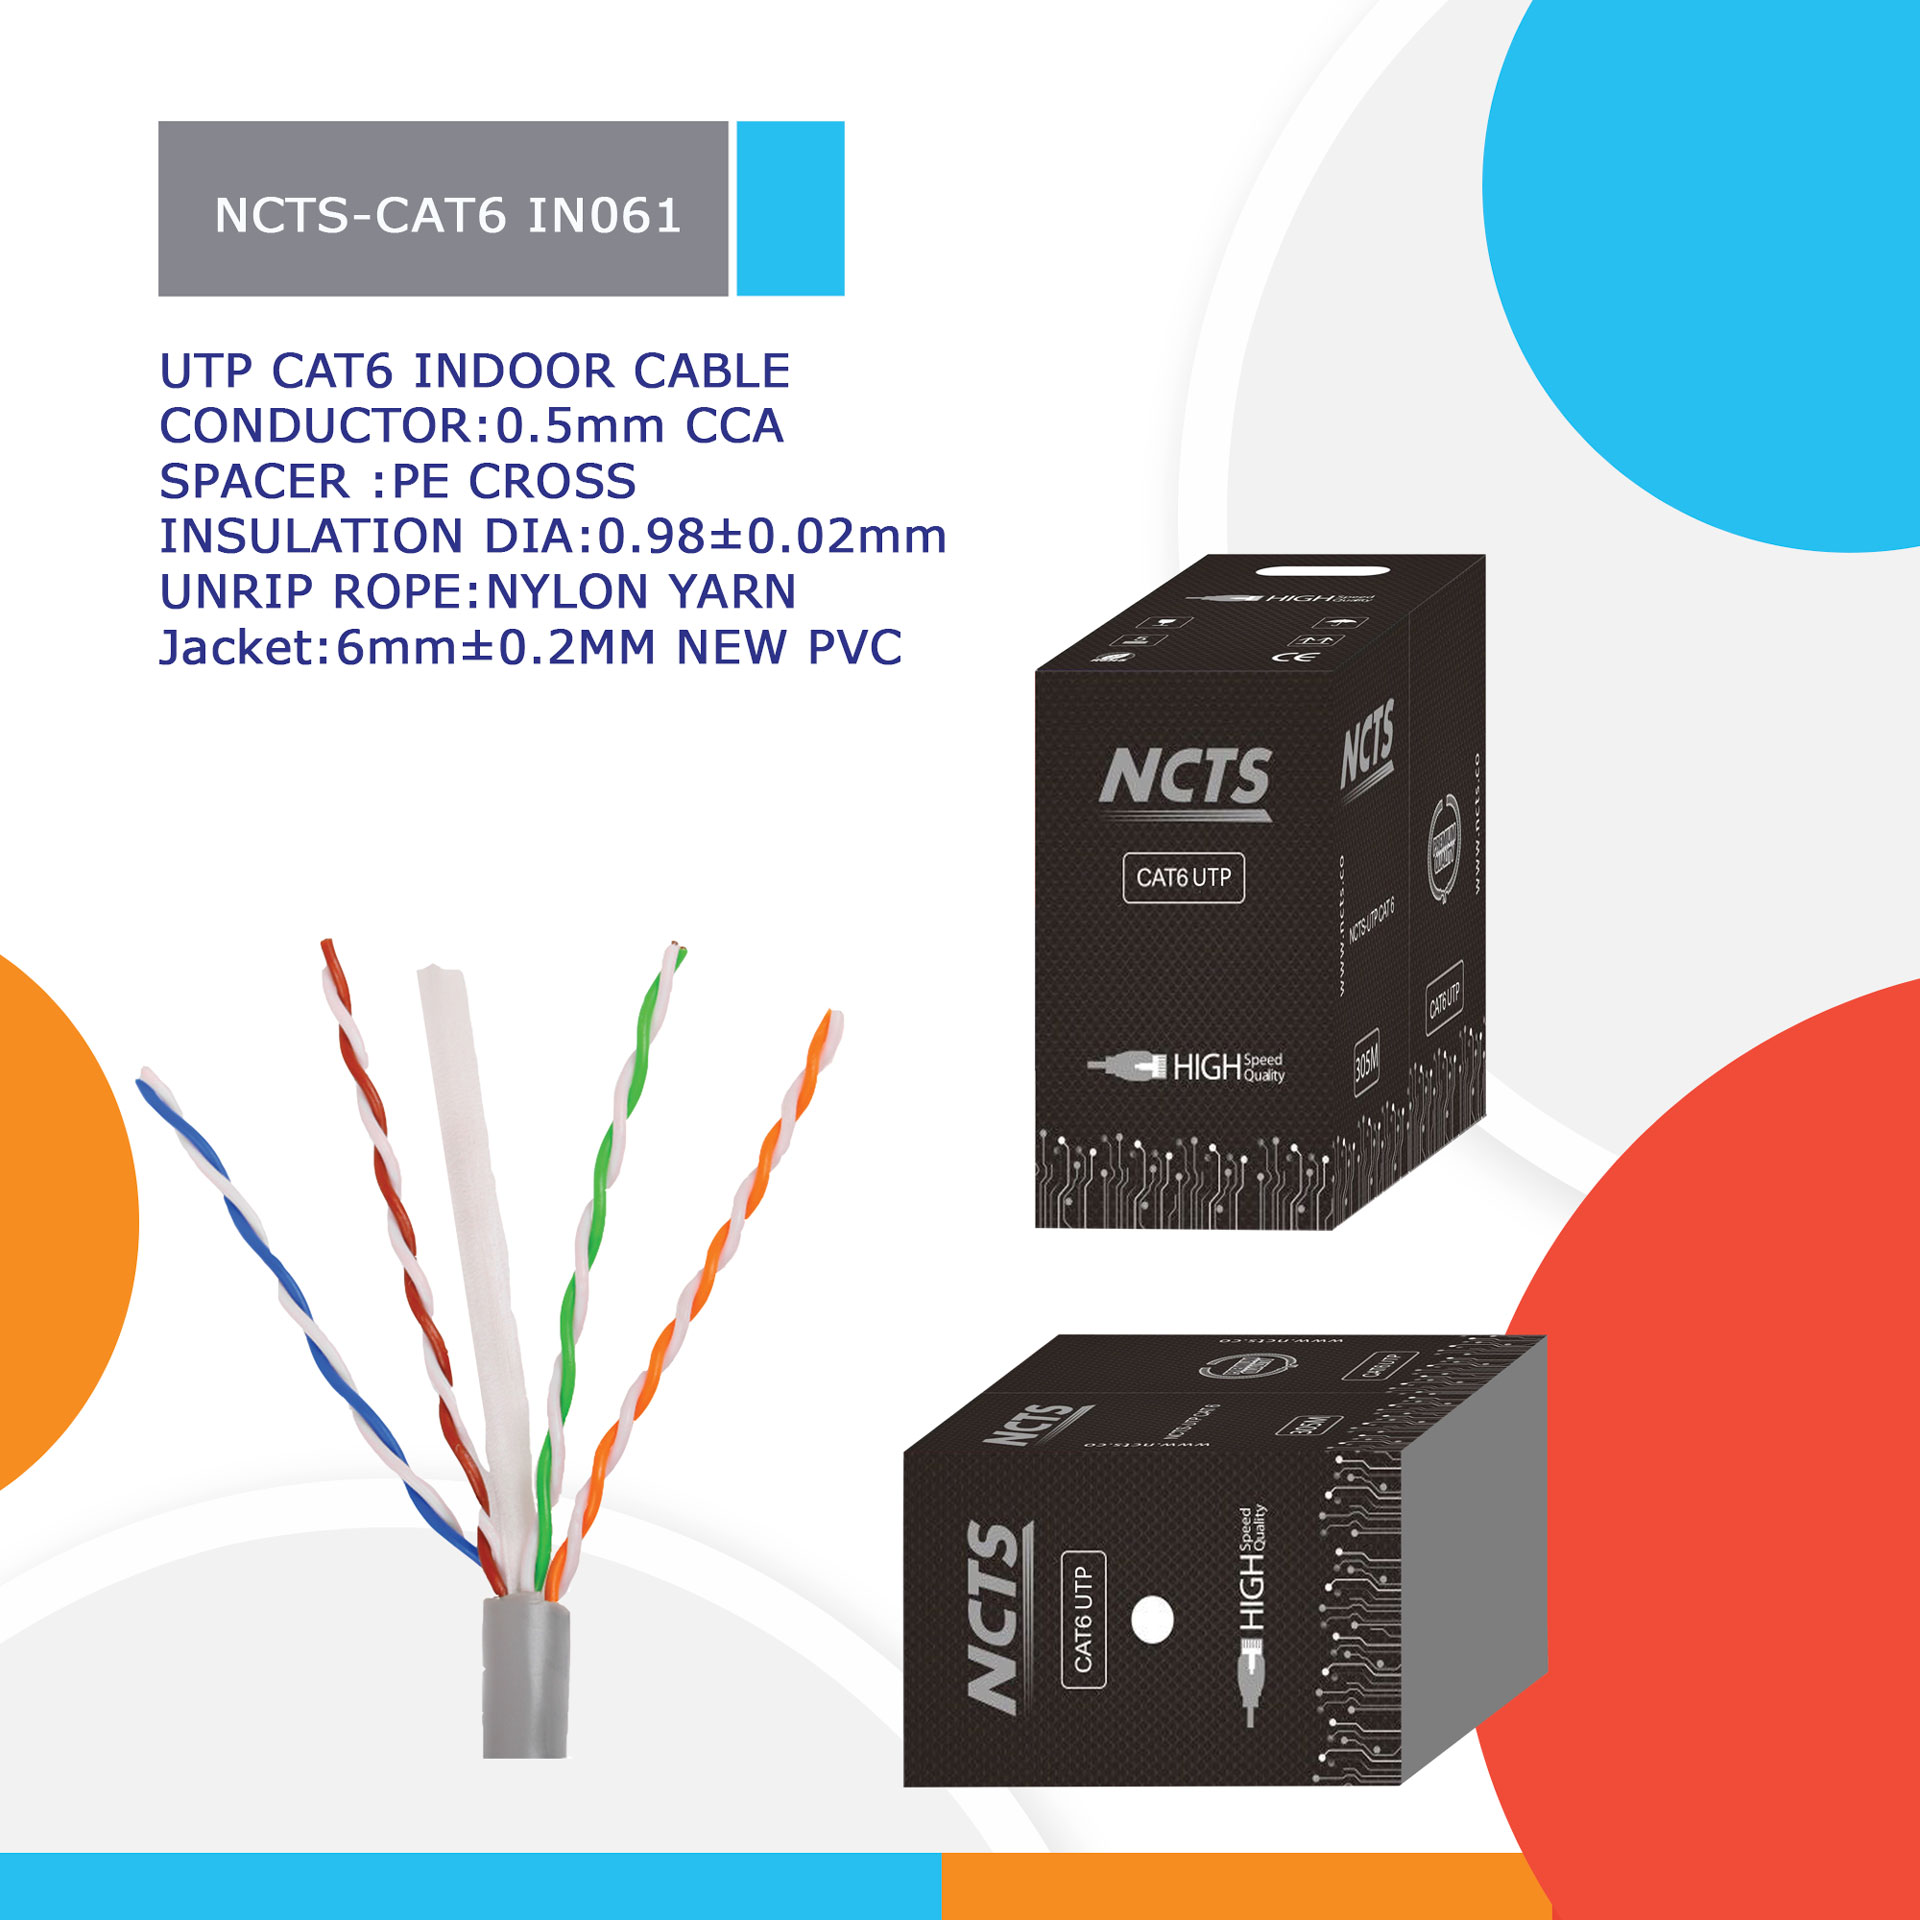 NCTS-CAT6 IN061